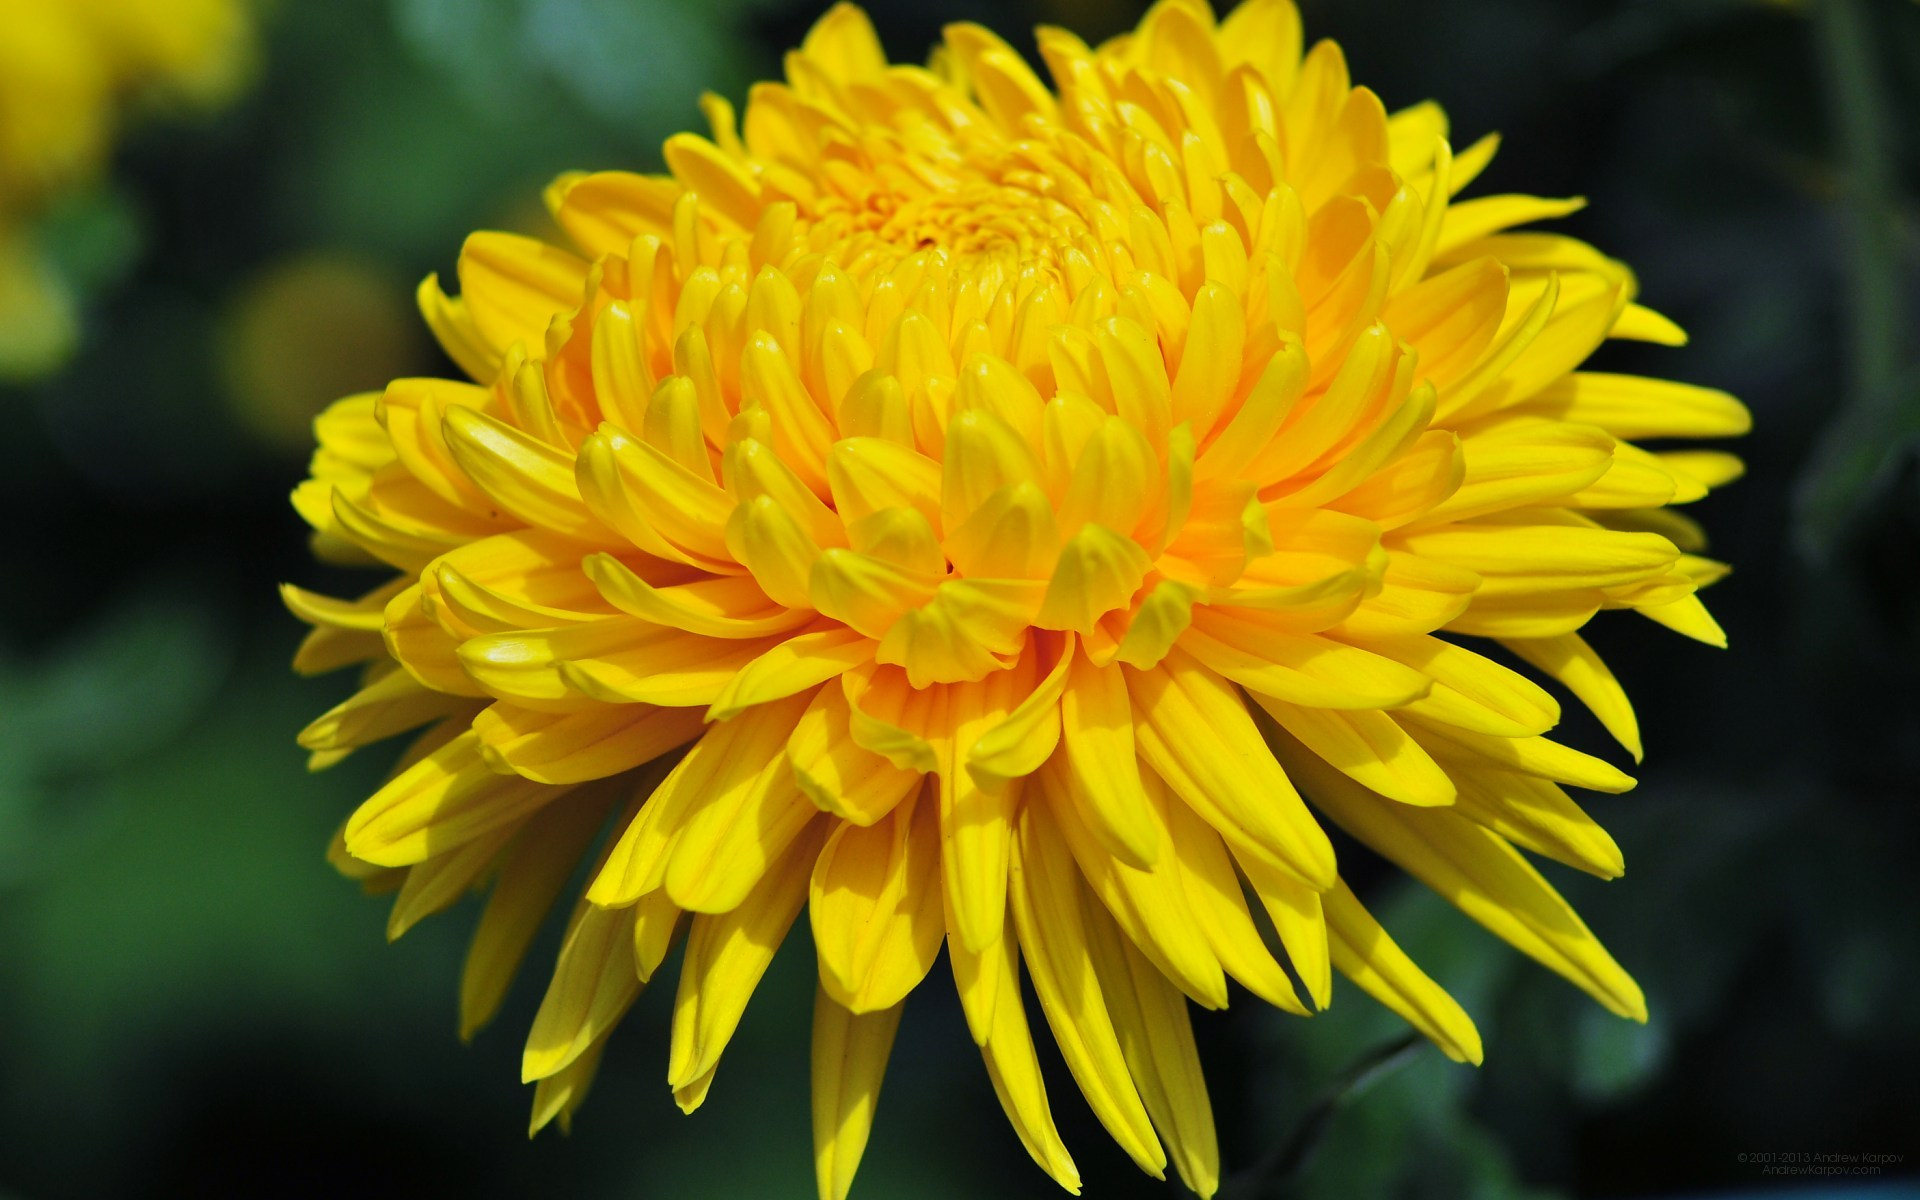 Yellow chrysanthemum flower yellow chrysanthemum flower photo7 mightylinksfo